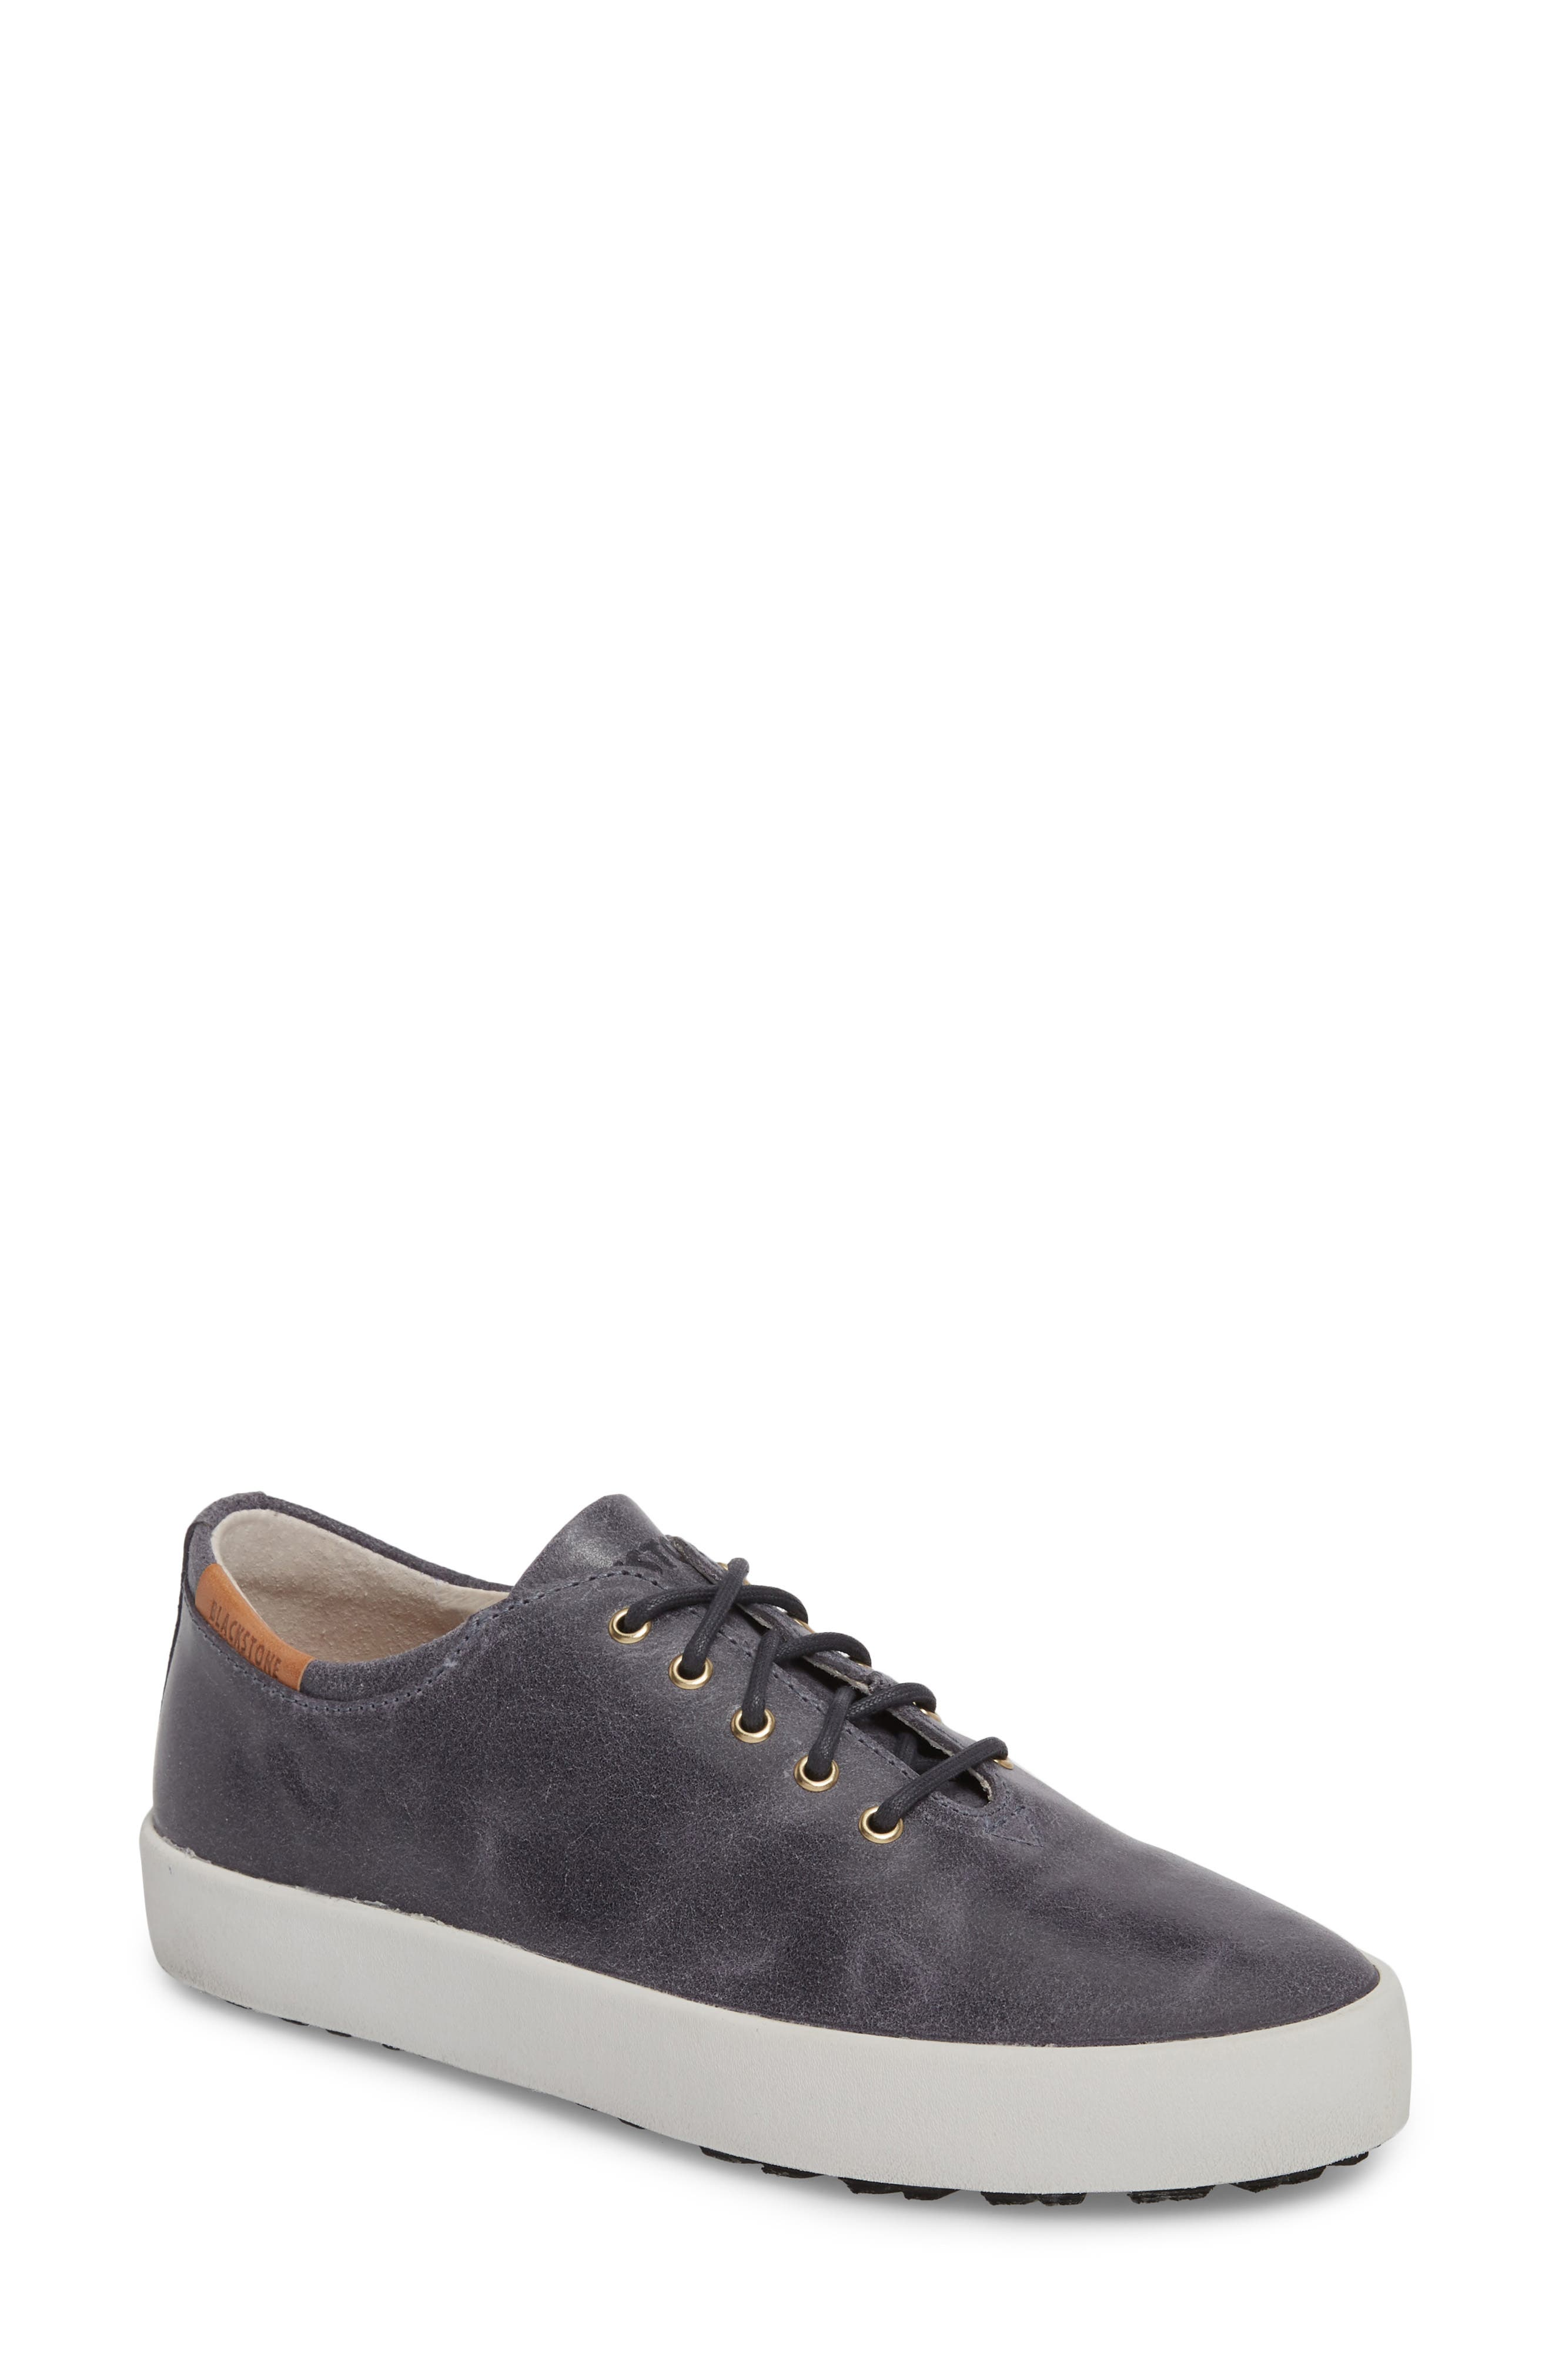 PL74 Sneaker,                             Main thumbnail 1, color,                             Periscope Leather